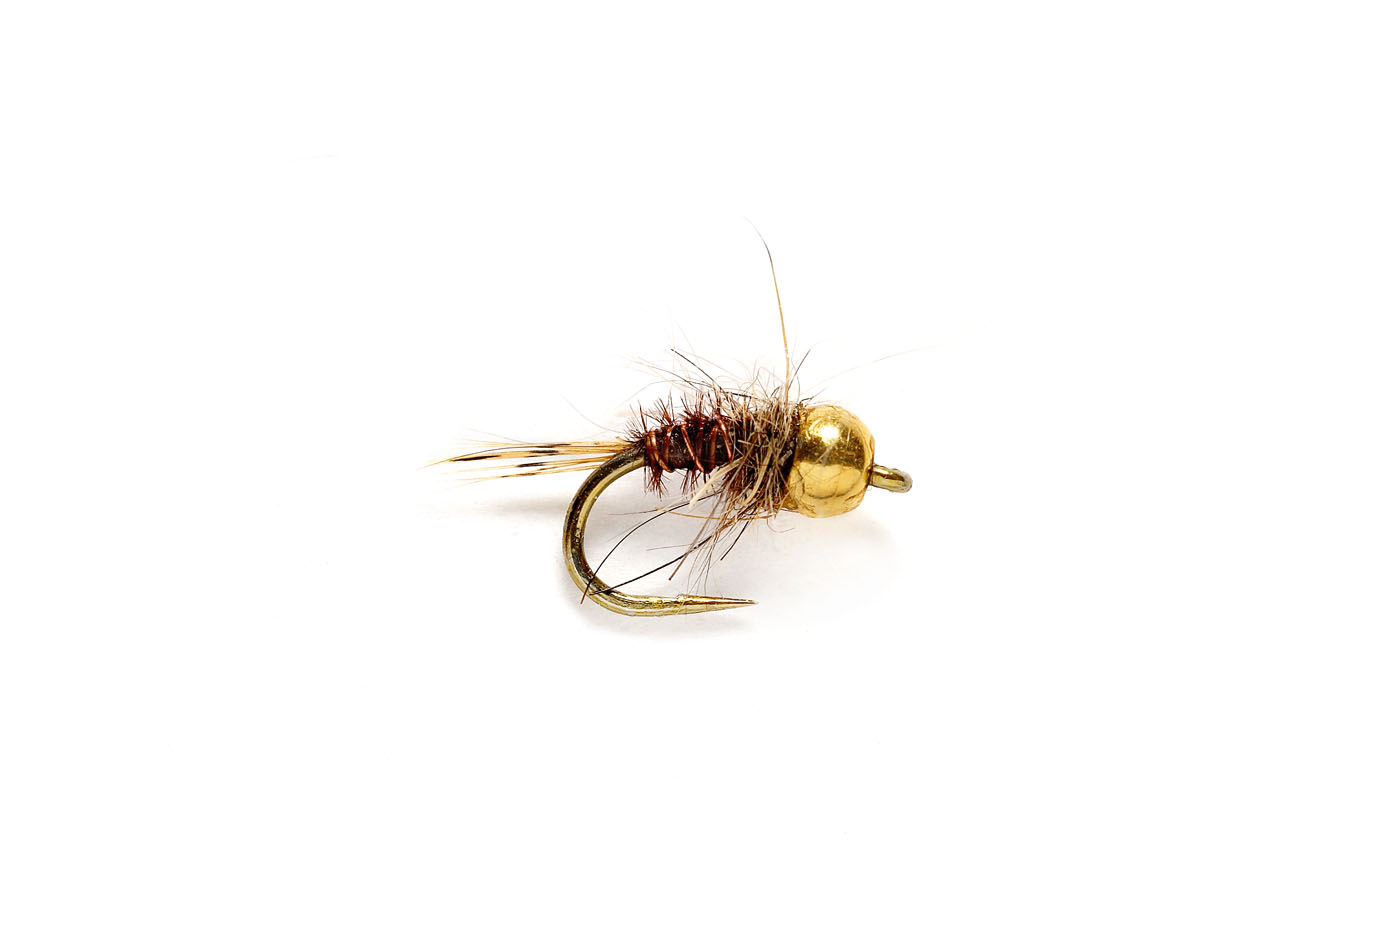 Pheasant Tail Micro (BH) Barbless